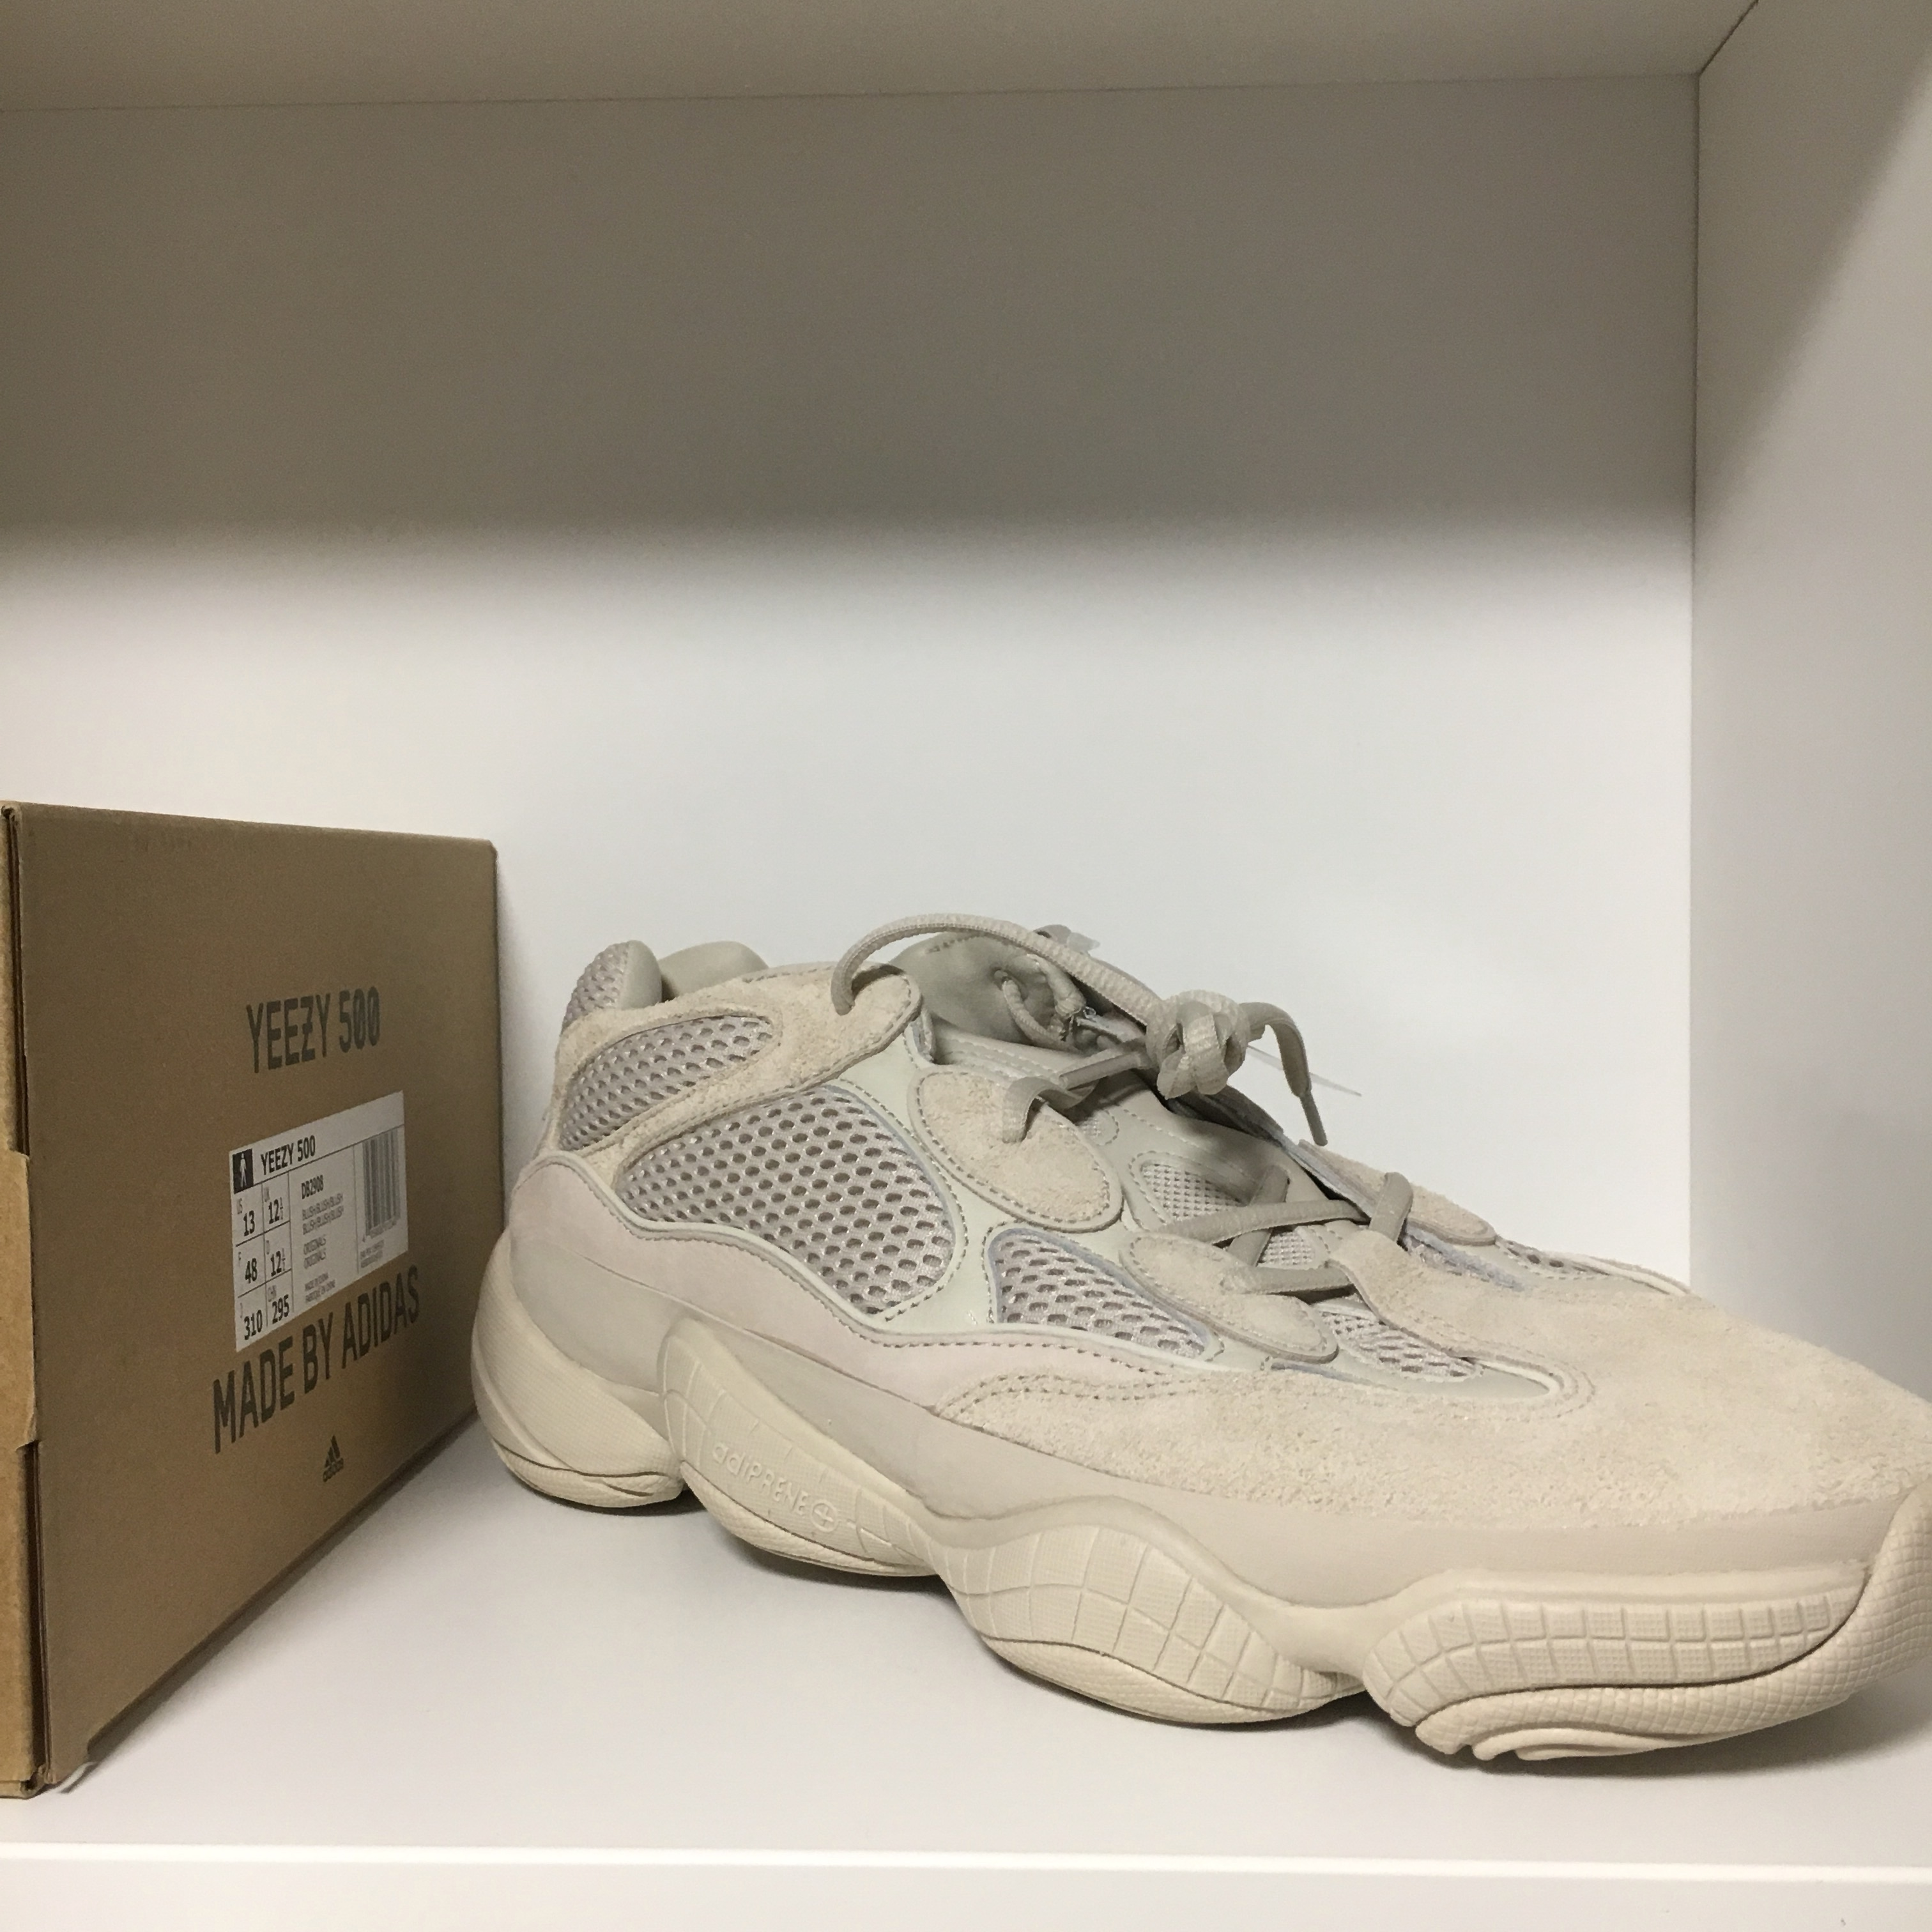 248677a91 Yeezy 500 Blush Contains no boost In Hand